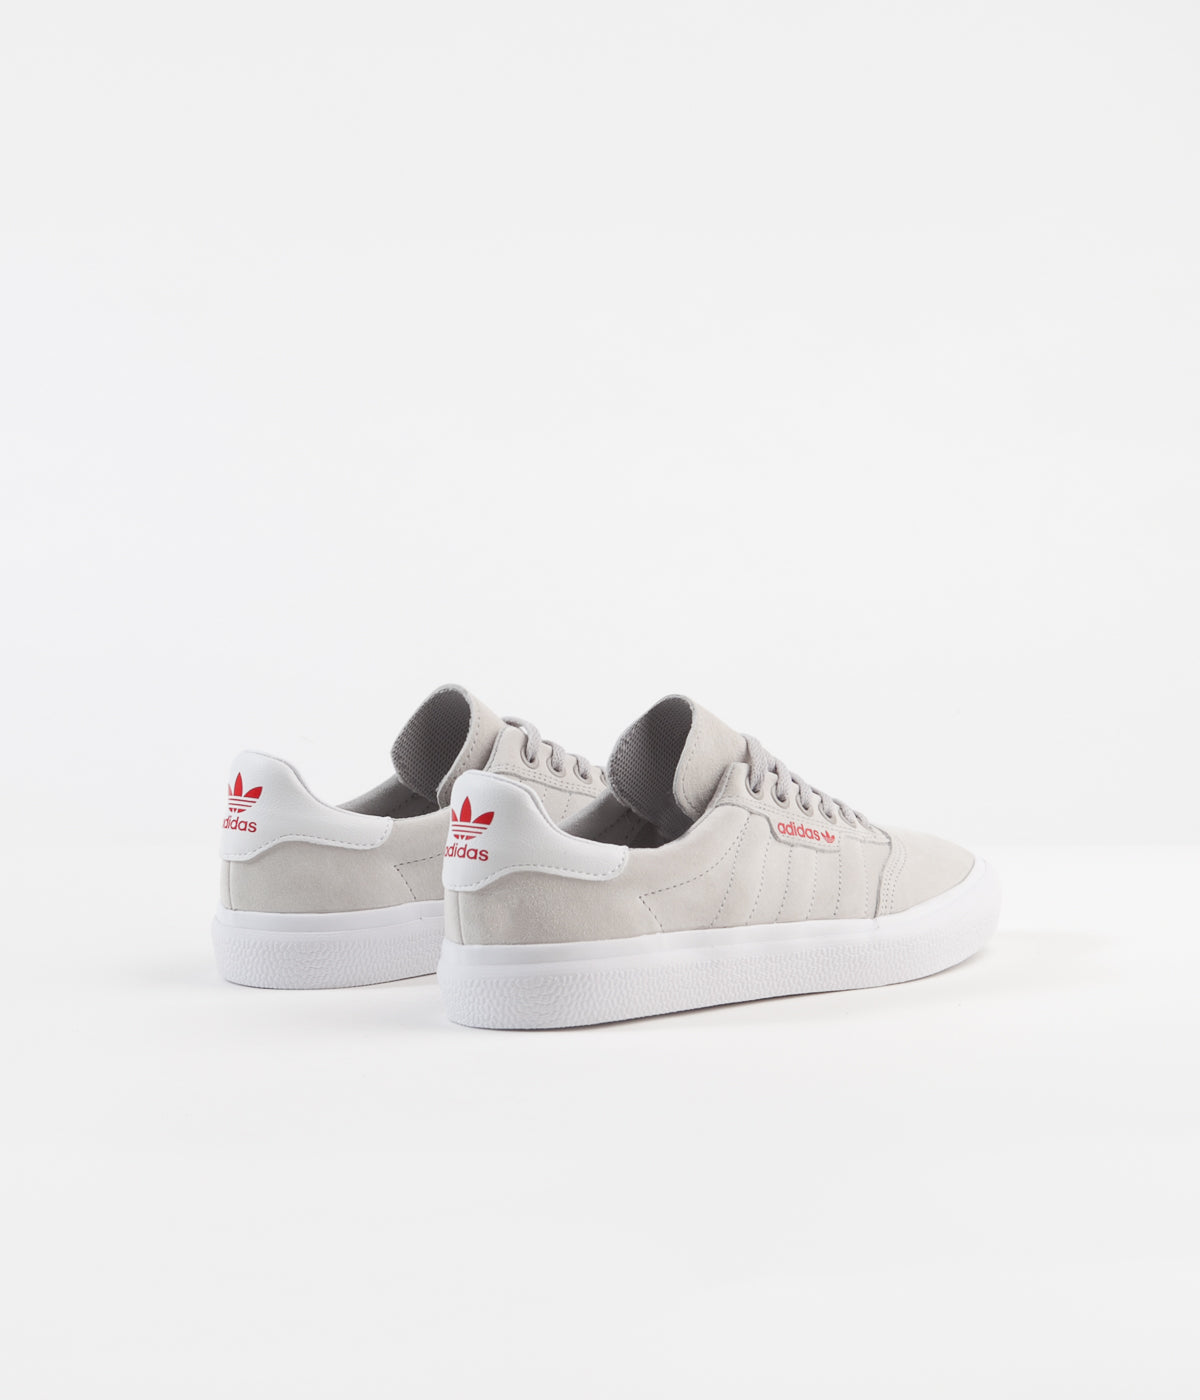 Adidas 3MC Shoes - Grey Two / White / Scarlet